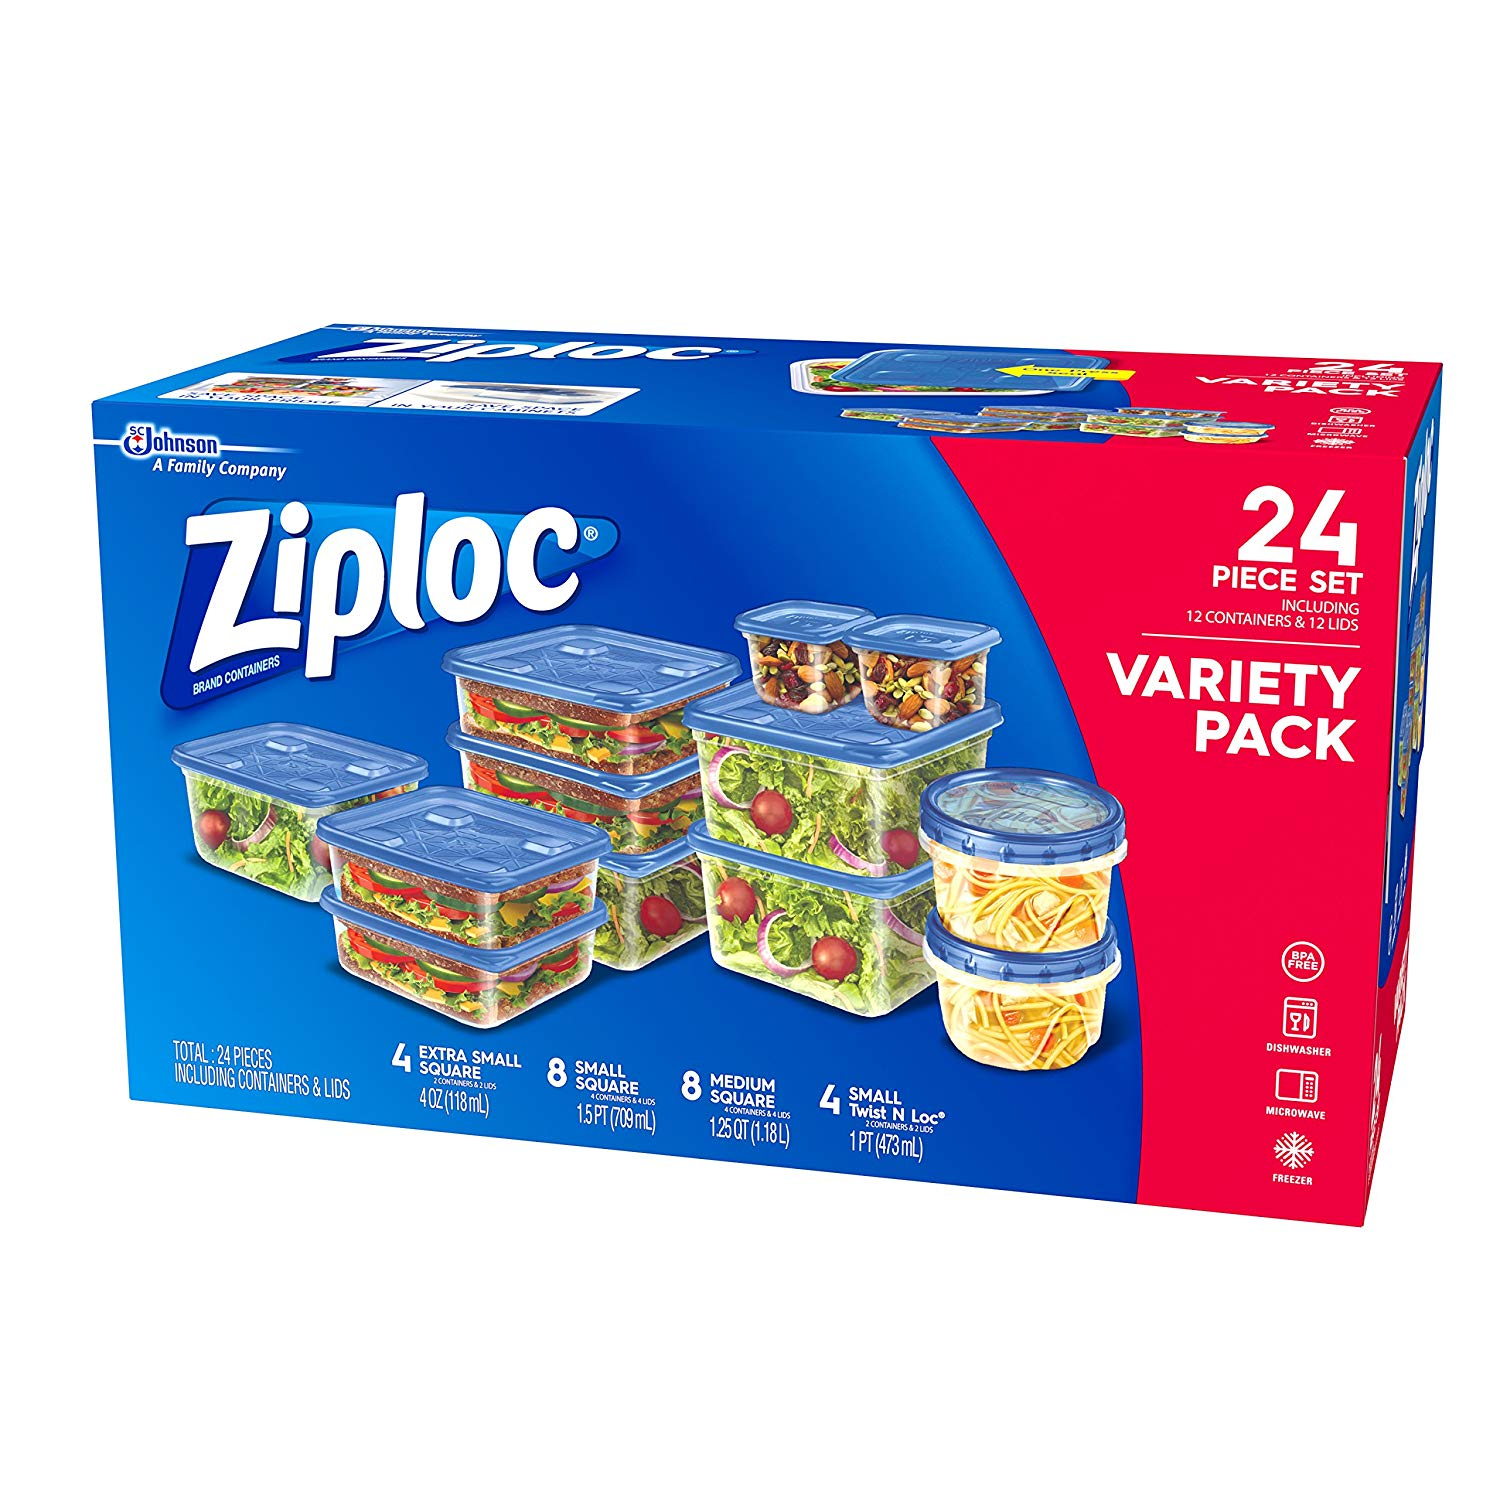 Ziploc Containers Variety Pack - 24 Count